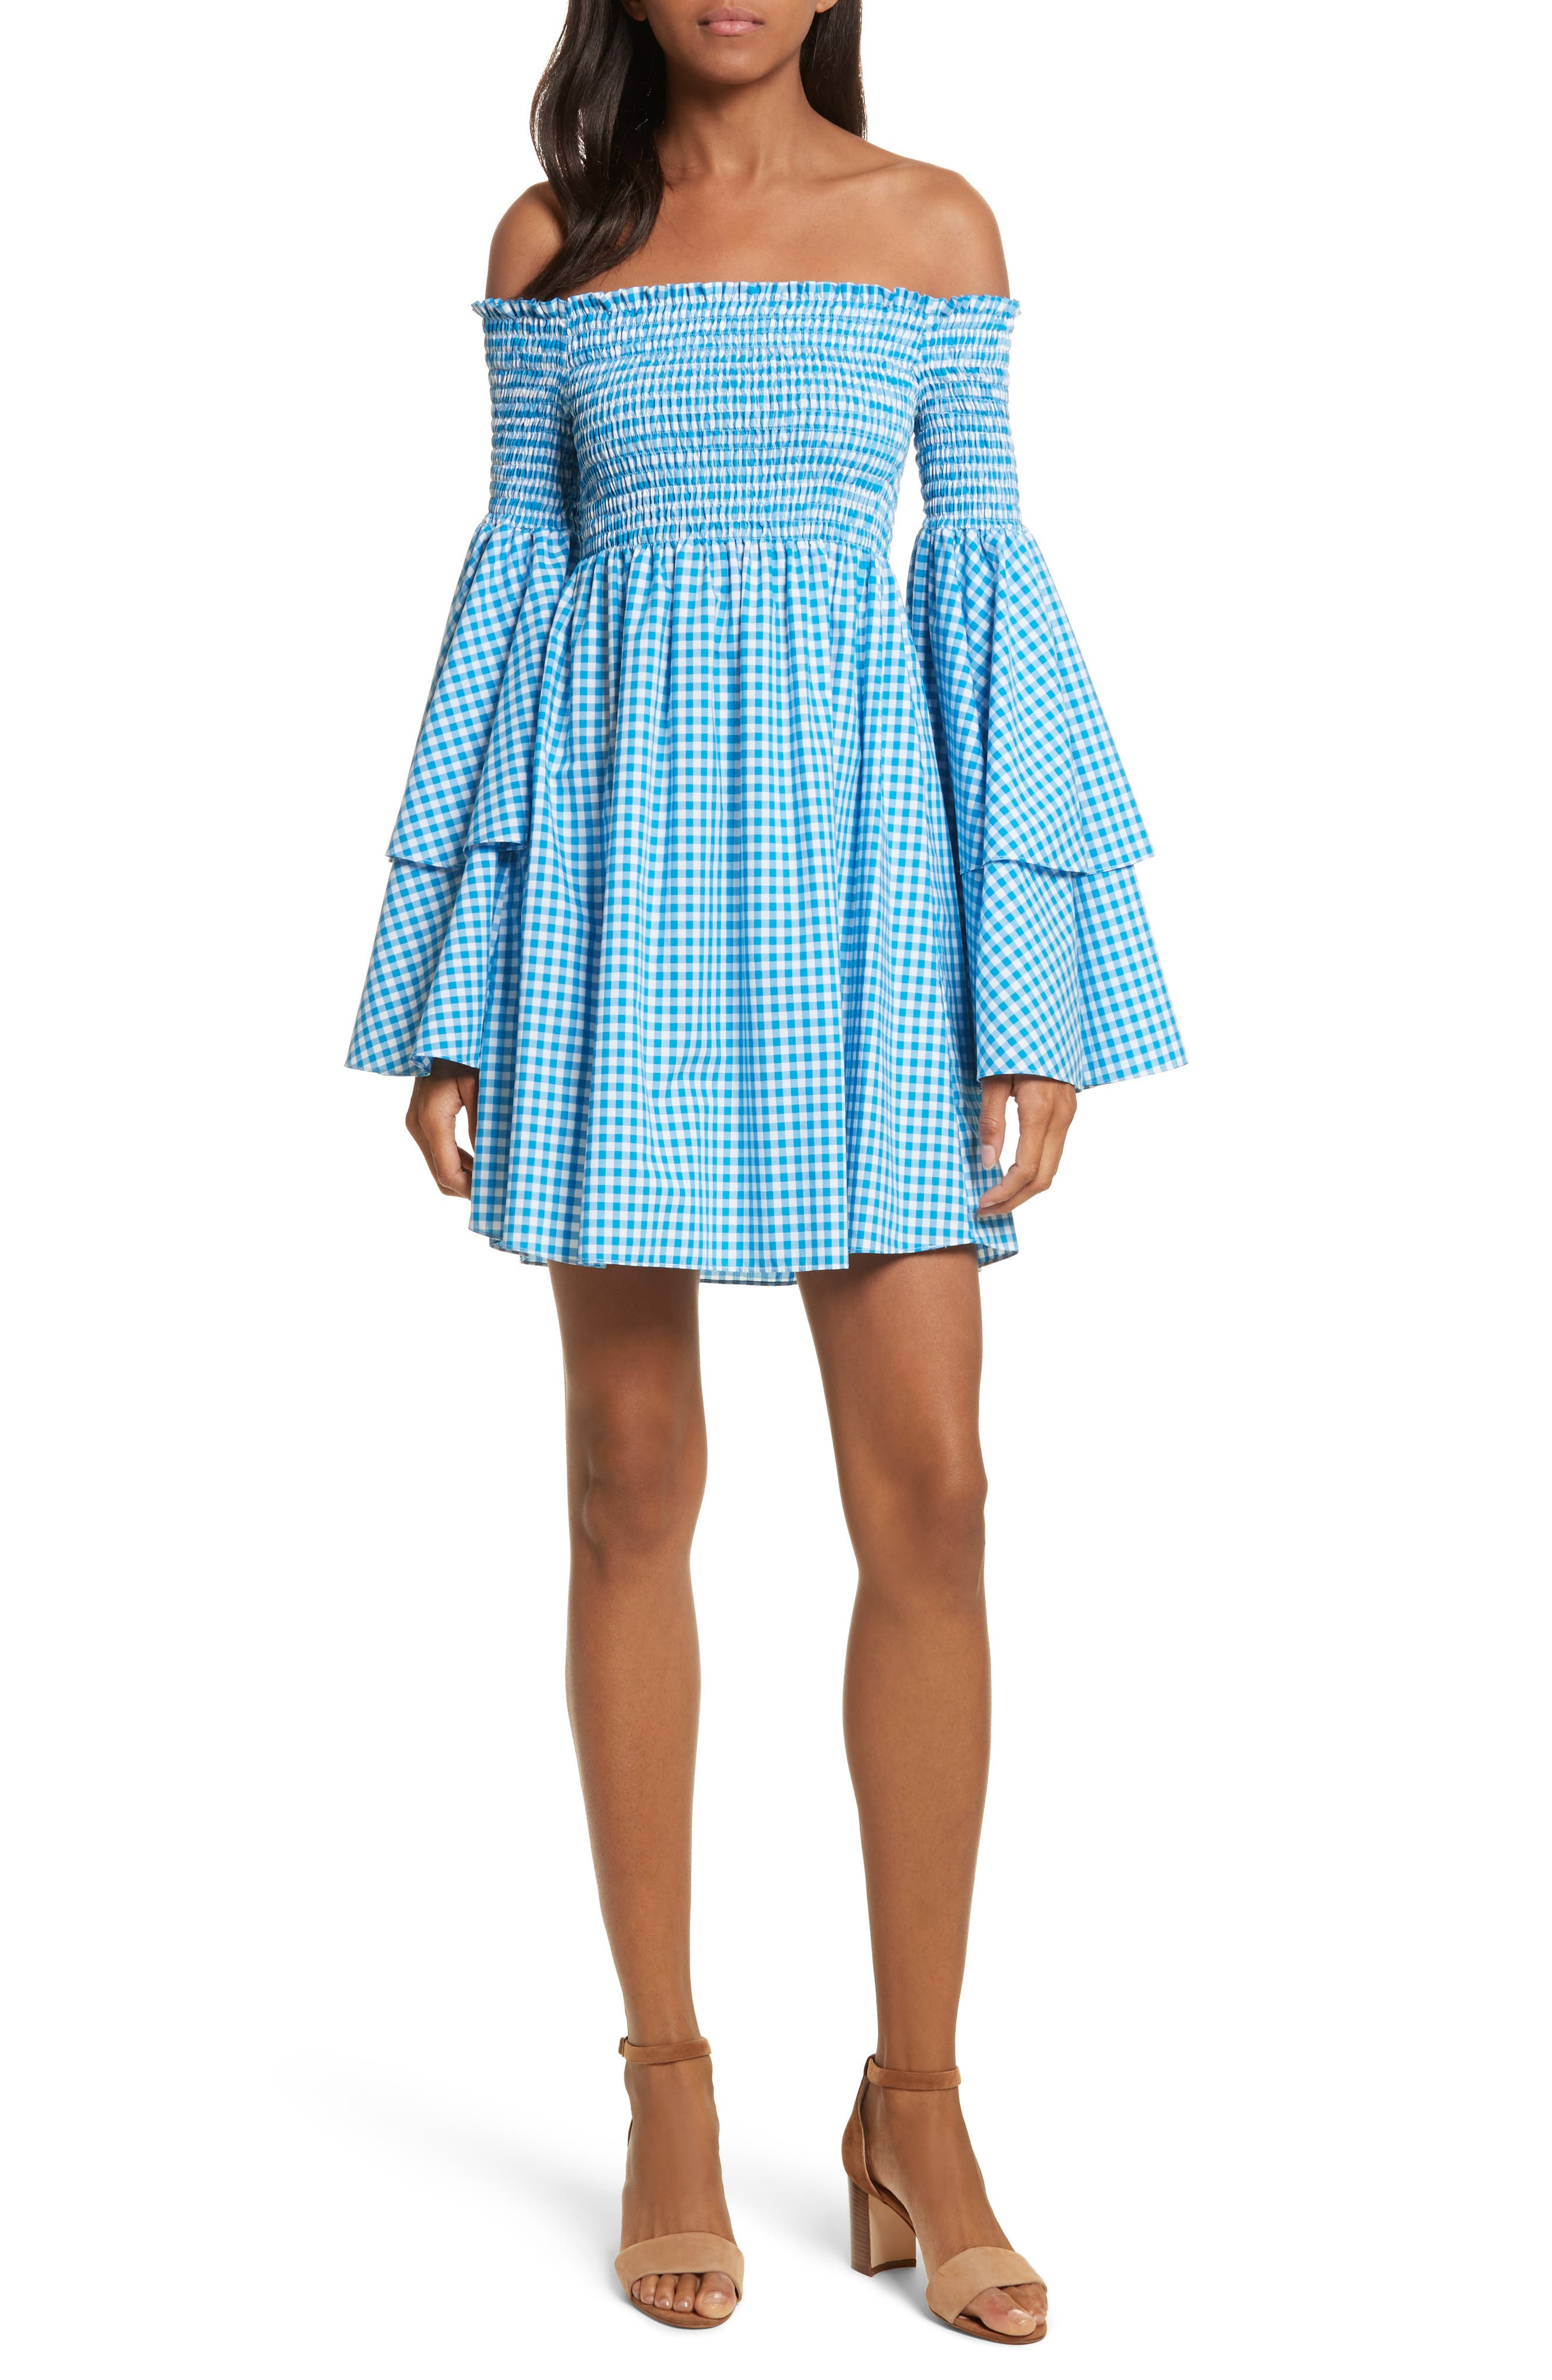 Appolonia Gingham Off the Shoulder Dress,                         Main,                         color, 451